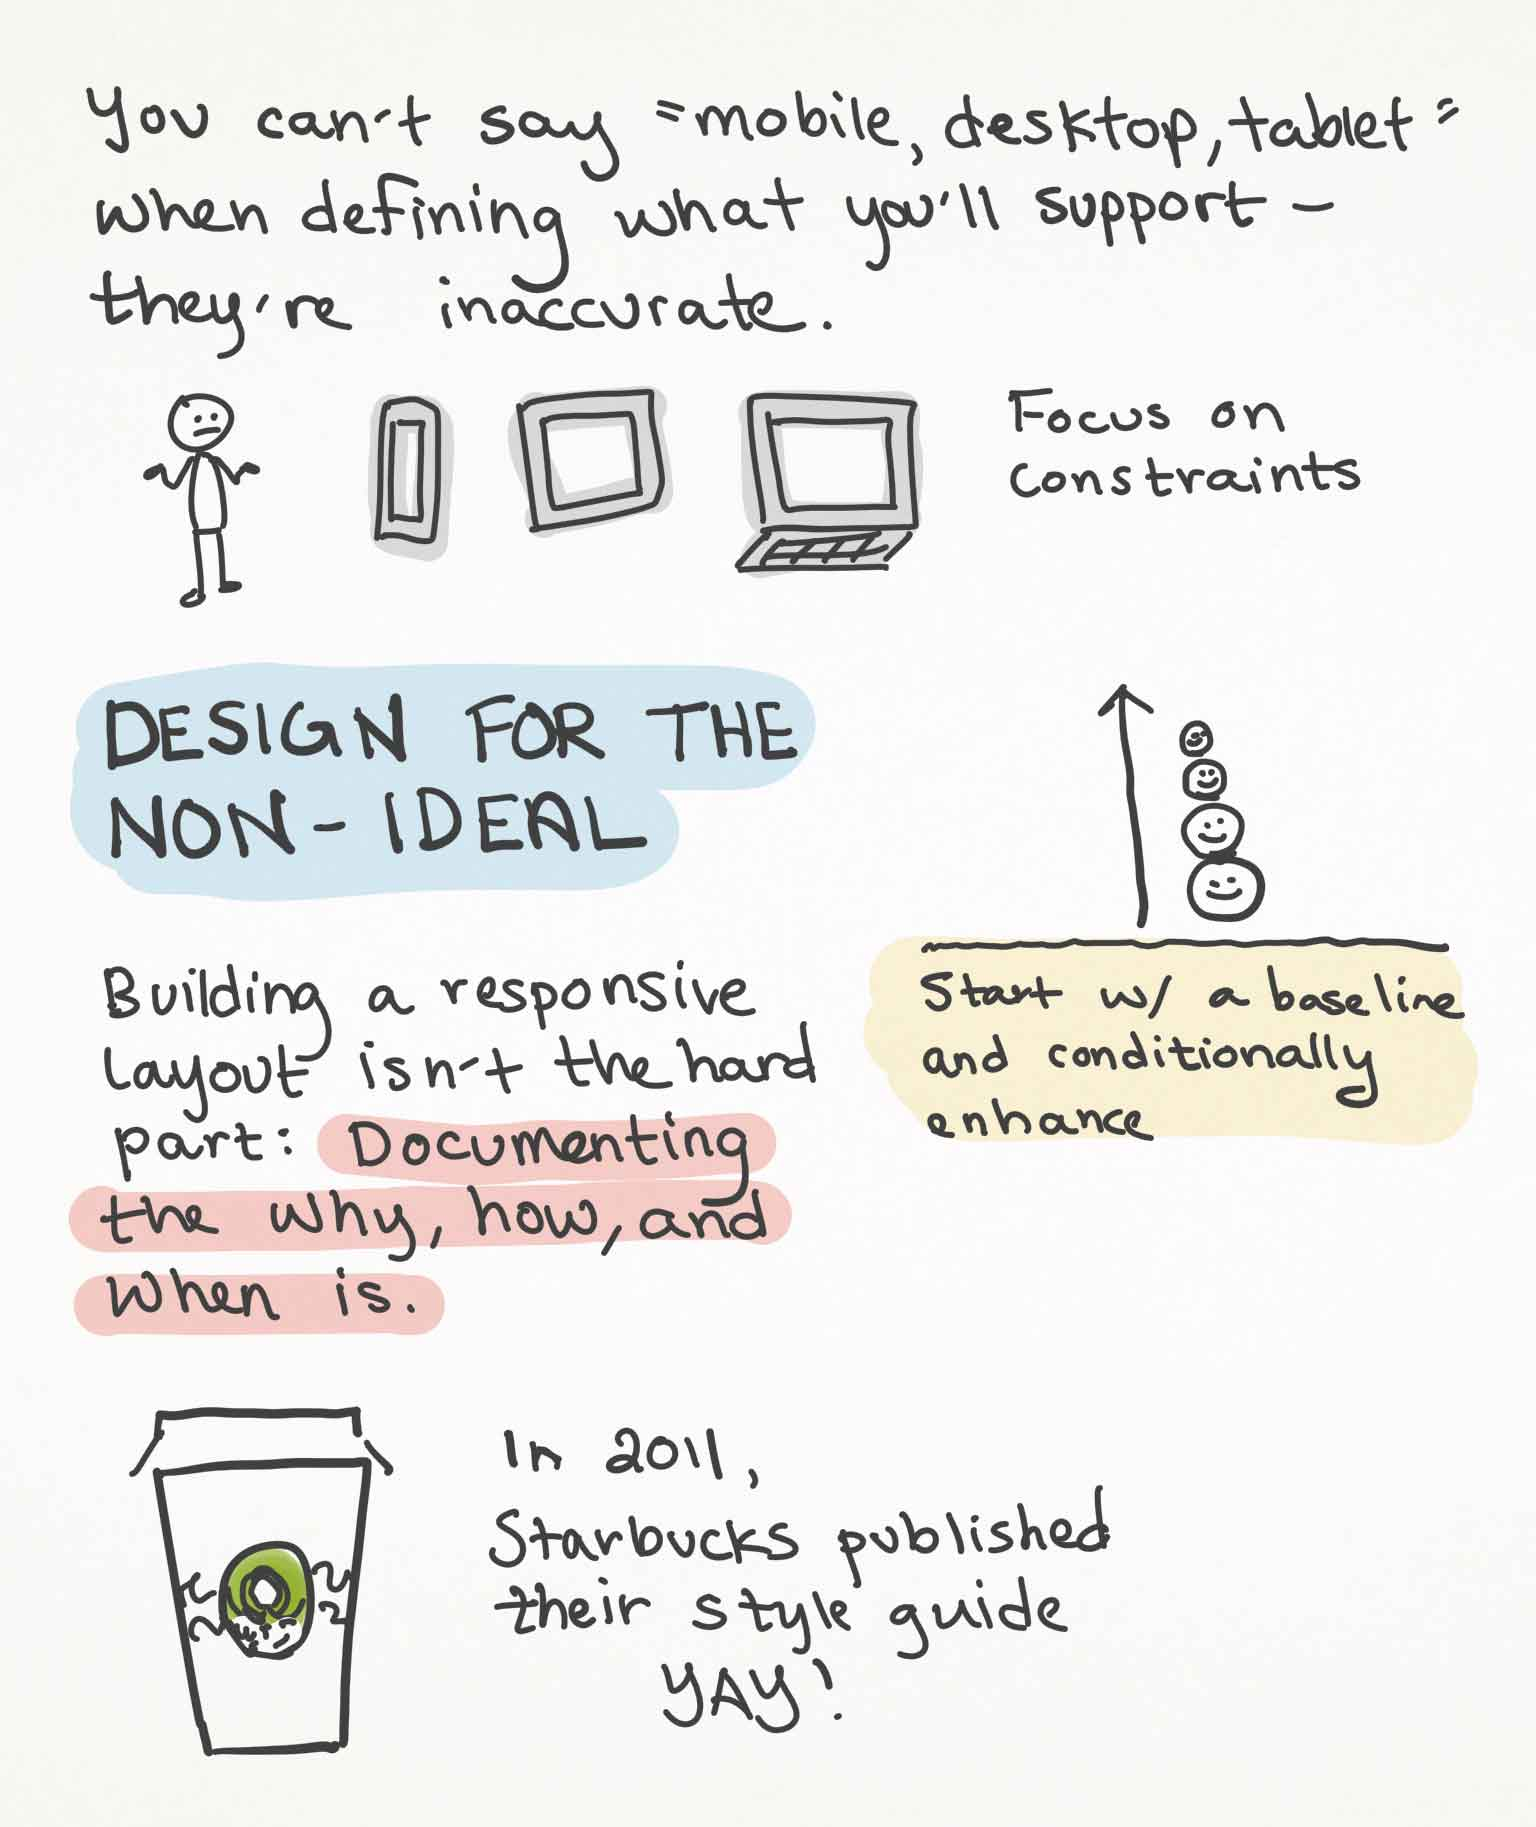 Sketchnotes page 4 from Ethan Marcotte's talk